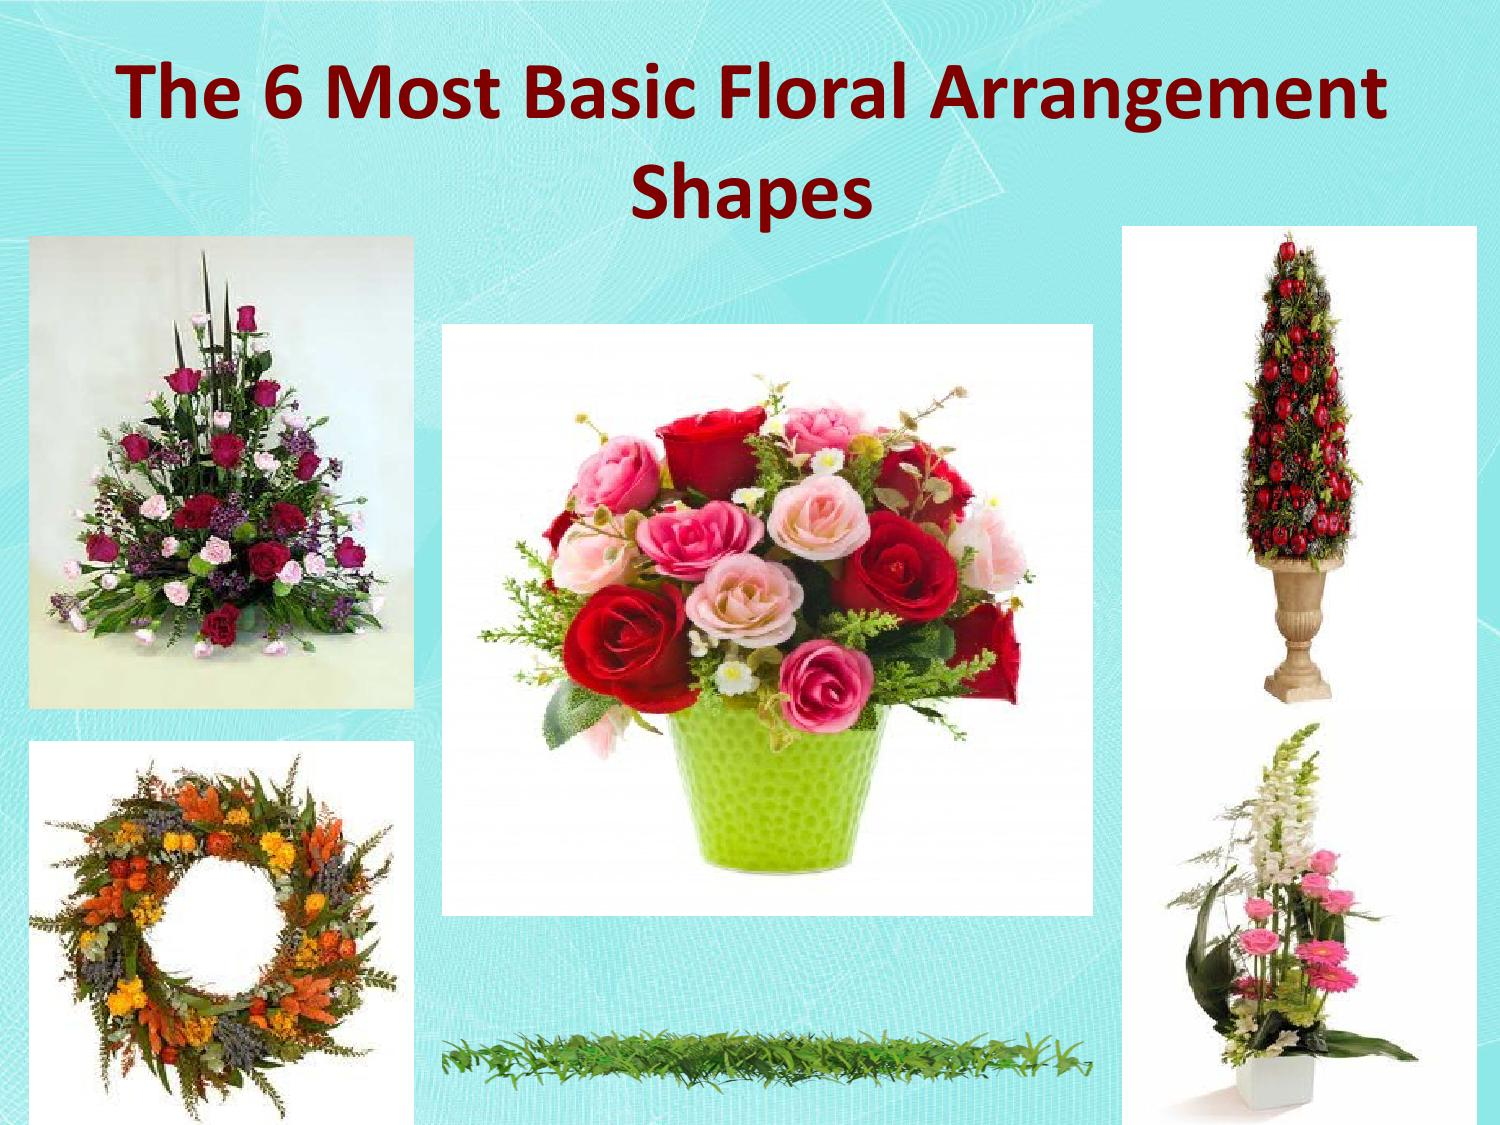 The 6 Most Basic Floral Arrangement Shapes By